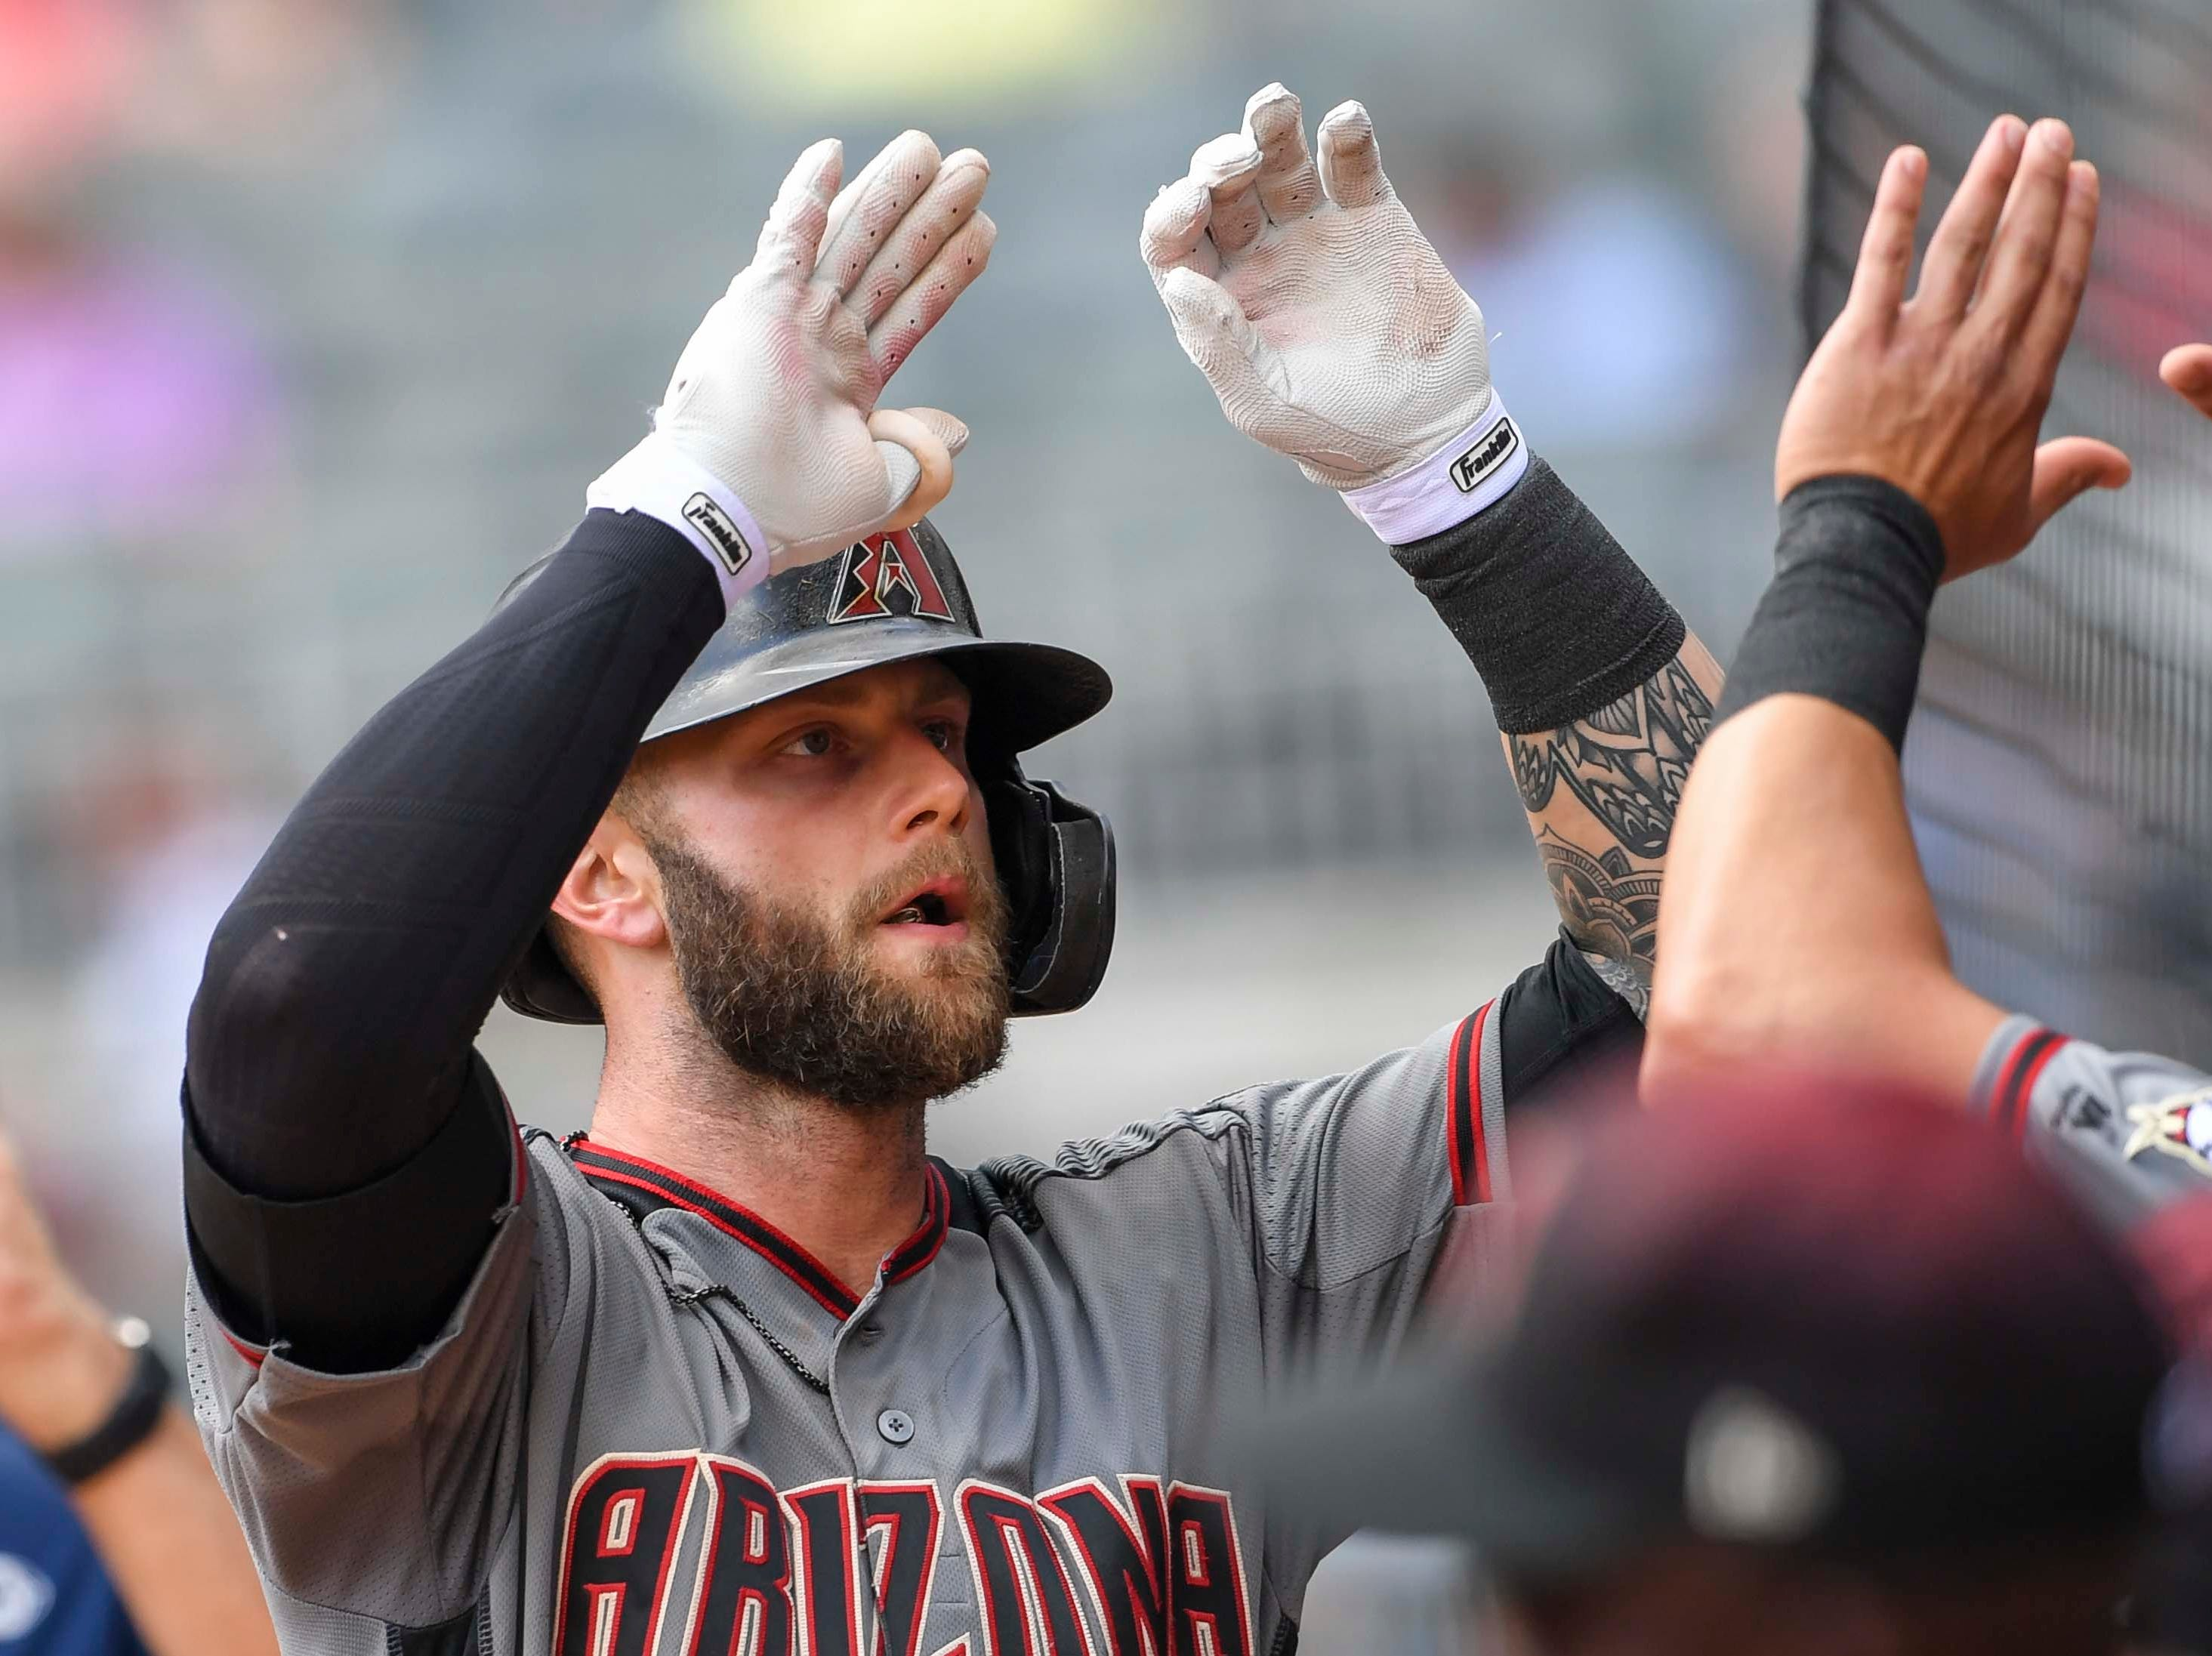 Apr 18, 2019; Atlanta, GA, USA; Arizona Diamondbacks first baseman Christian Walker (53) reacts with team mates after hitting a home run against the Atlanta Braves during the seventh inning at SunTrust Park. Mandatory Credit: Dale Zanine-USA TODAY Sports